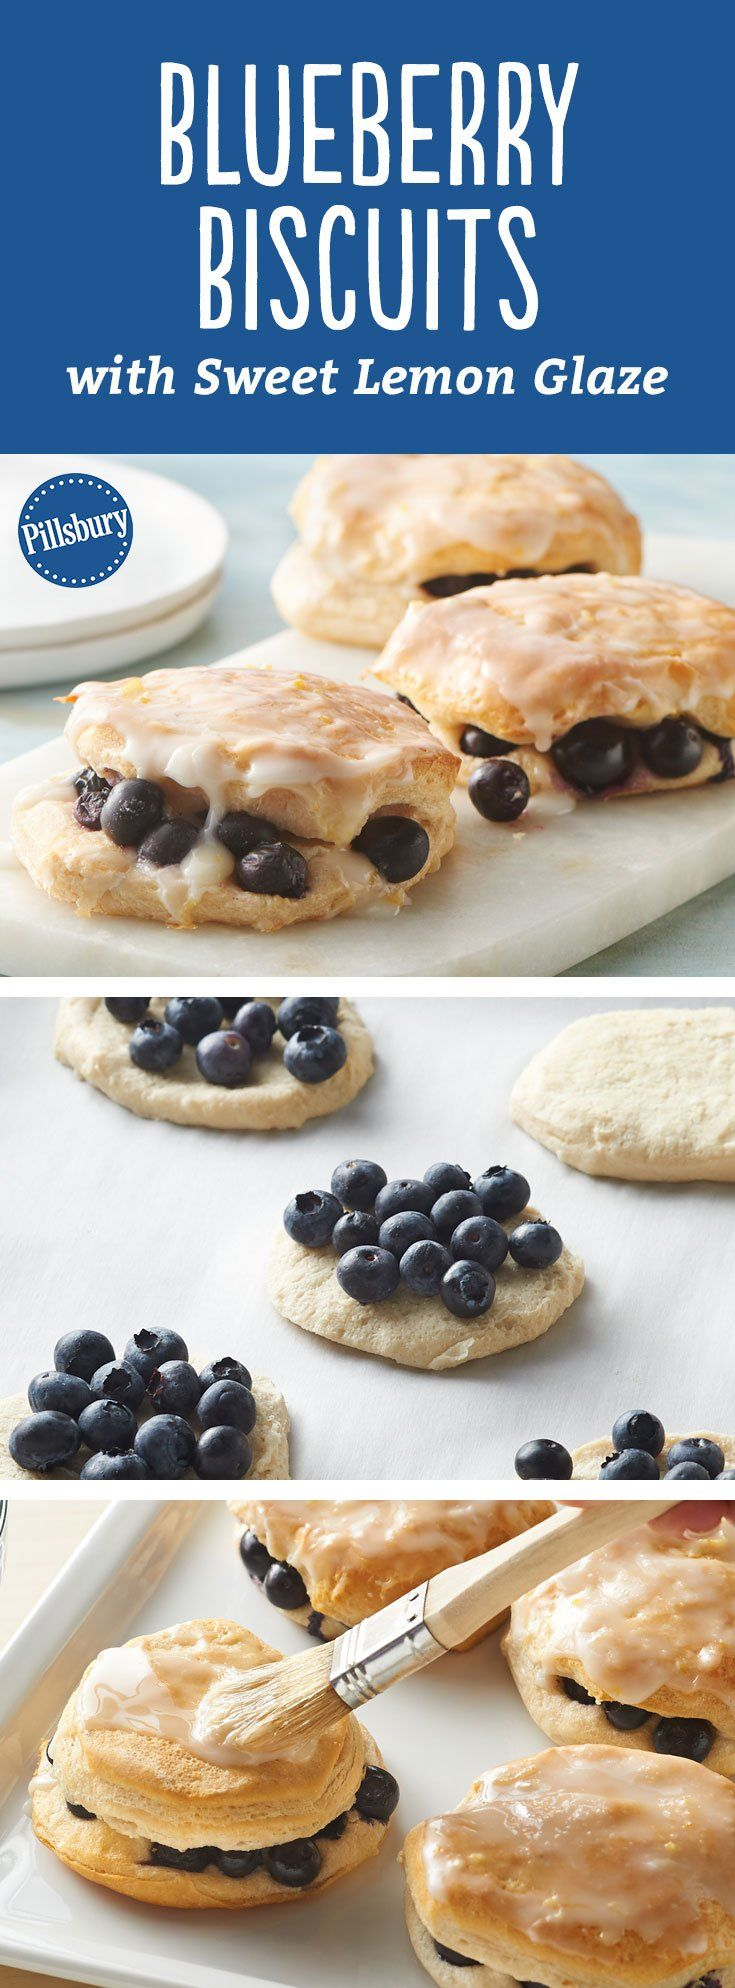 These blueberry-stuffed biscuits are easy, delicious and a beautiful addition to the brunch table with their homemade lemon glaze. Expert tip: For the prettiest presentation, arrange plenty of blueberries along outer edges of biscuits so they burst and drip down edges of biscuits while baking.